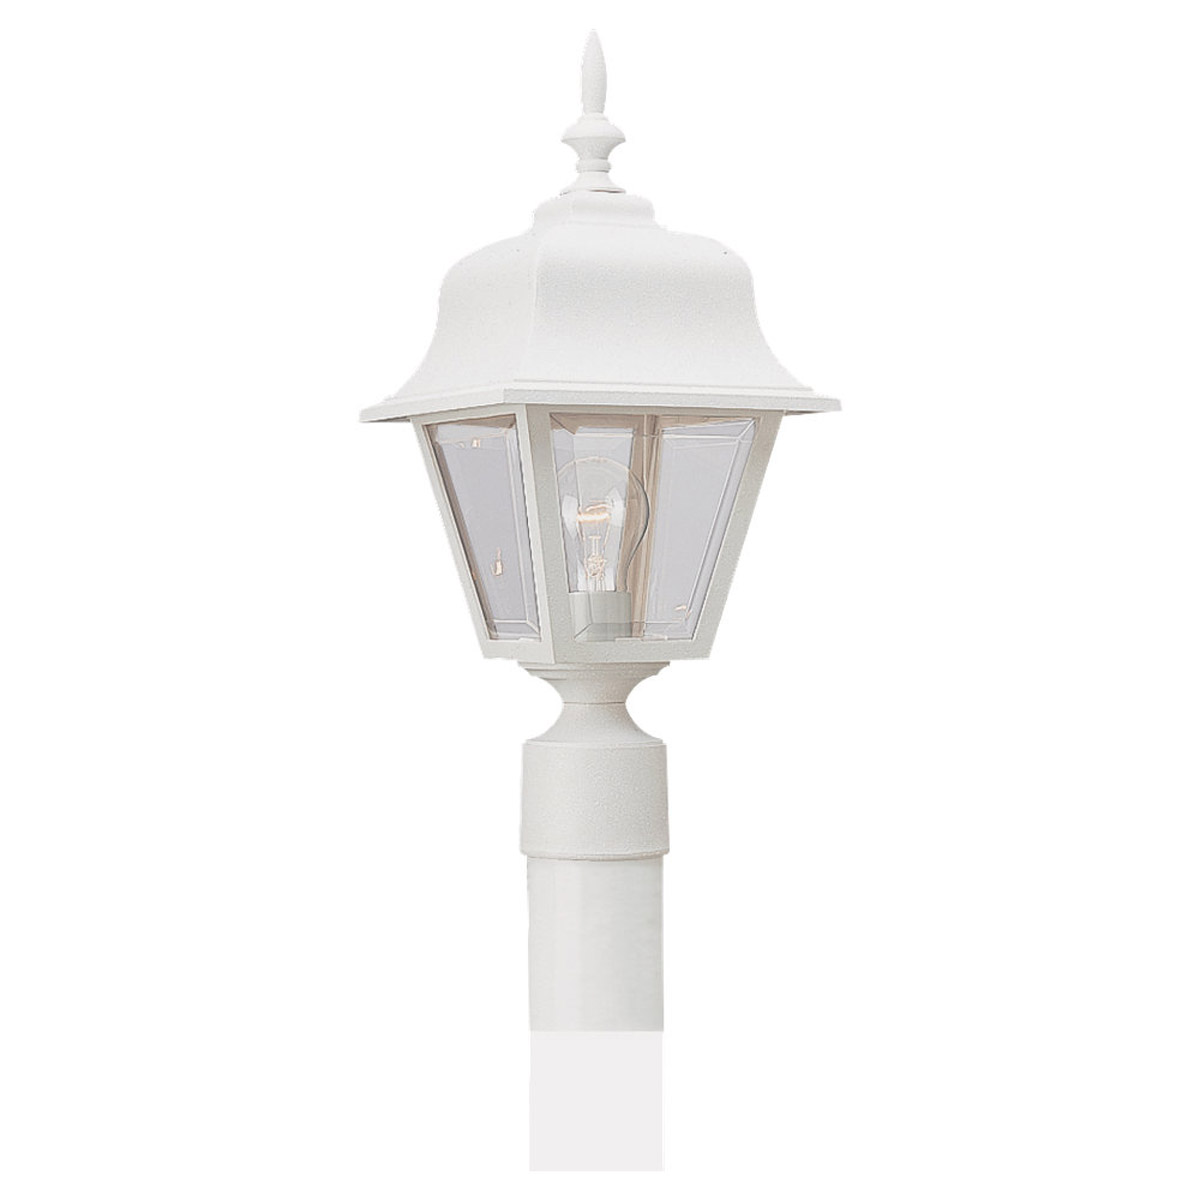 Sea Gull Lighting Polycarb Painted Lanterns 1 Light Outdoor Post Lantern in White 8255-15 photo